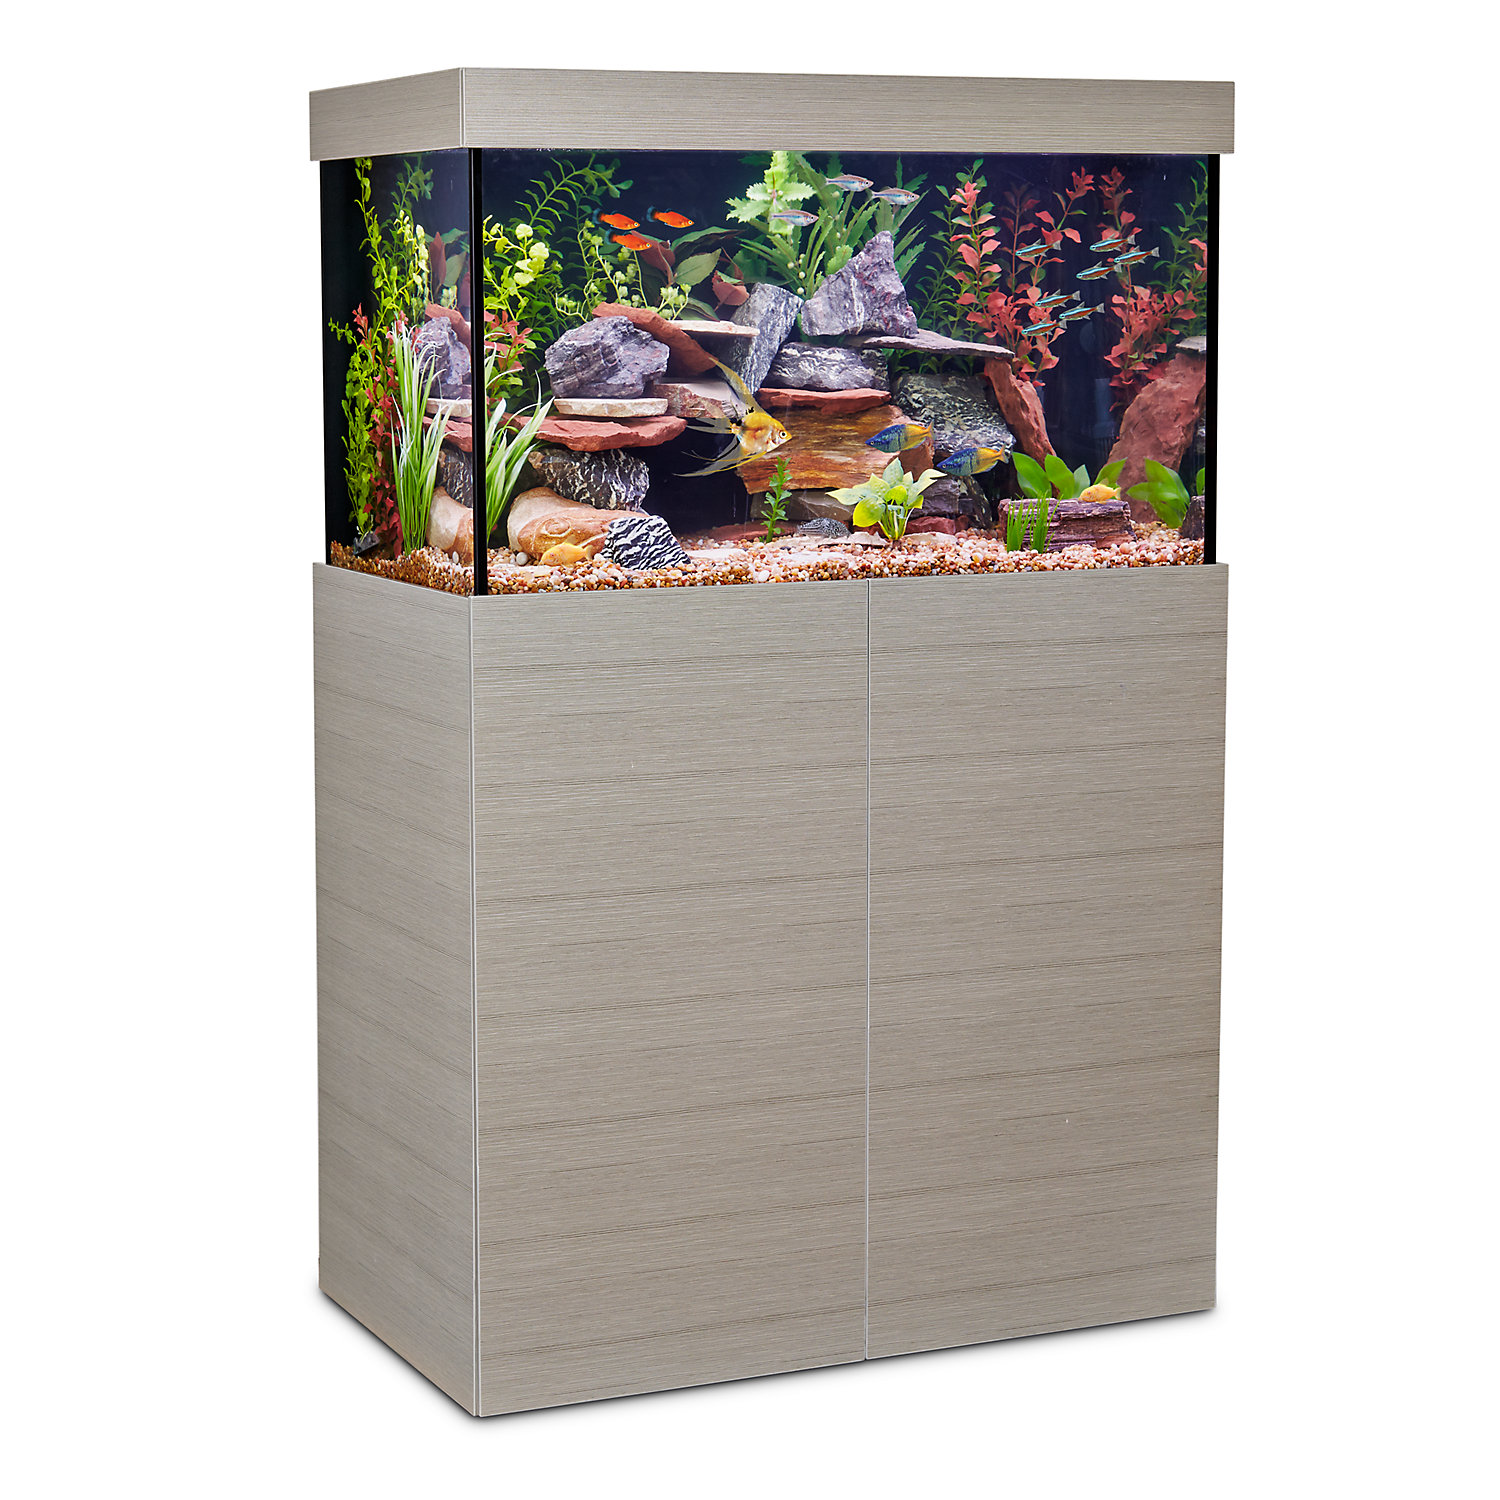 Aquarium decorations cheap online fish aquarium d cor deals for Aquarium decoration online